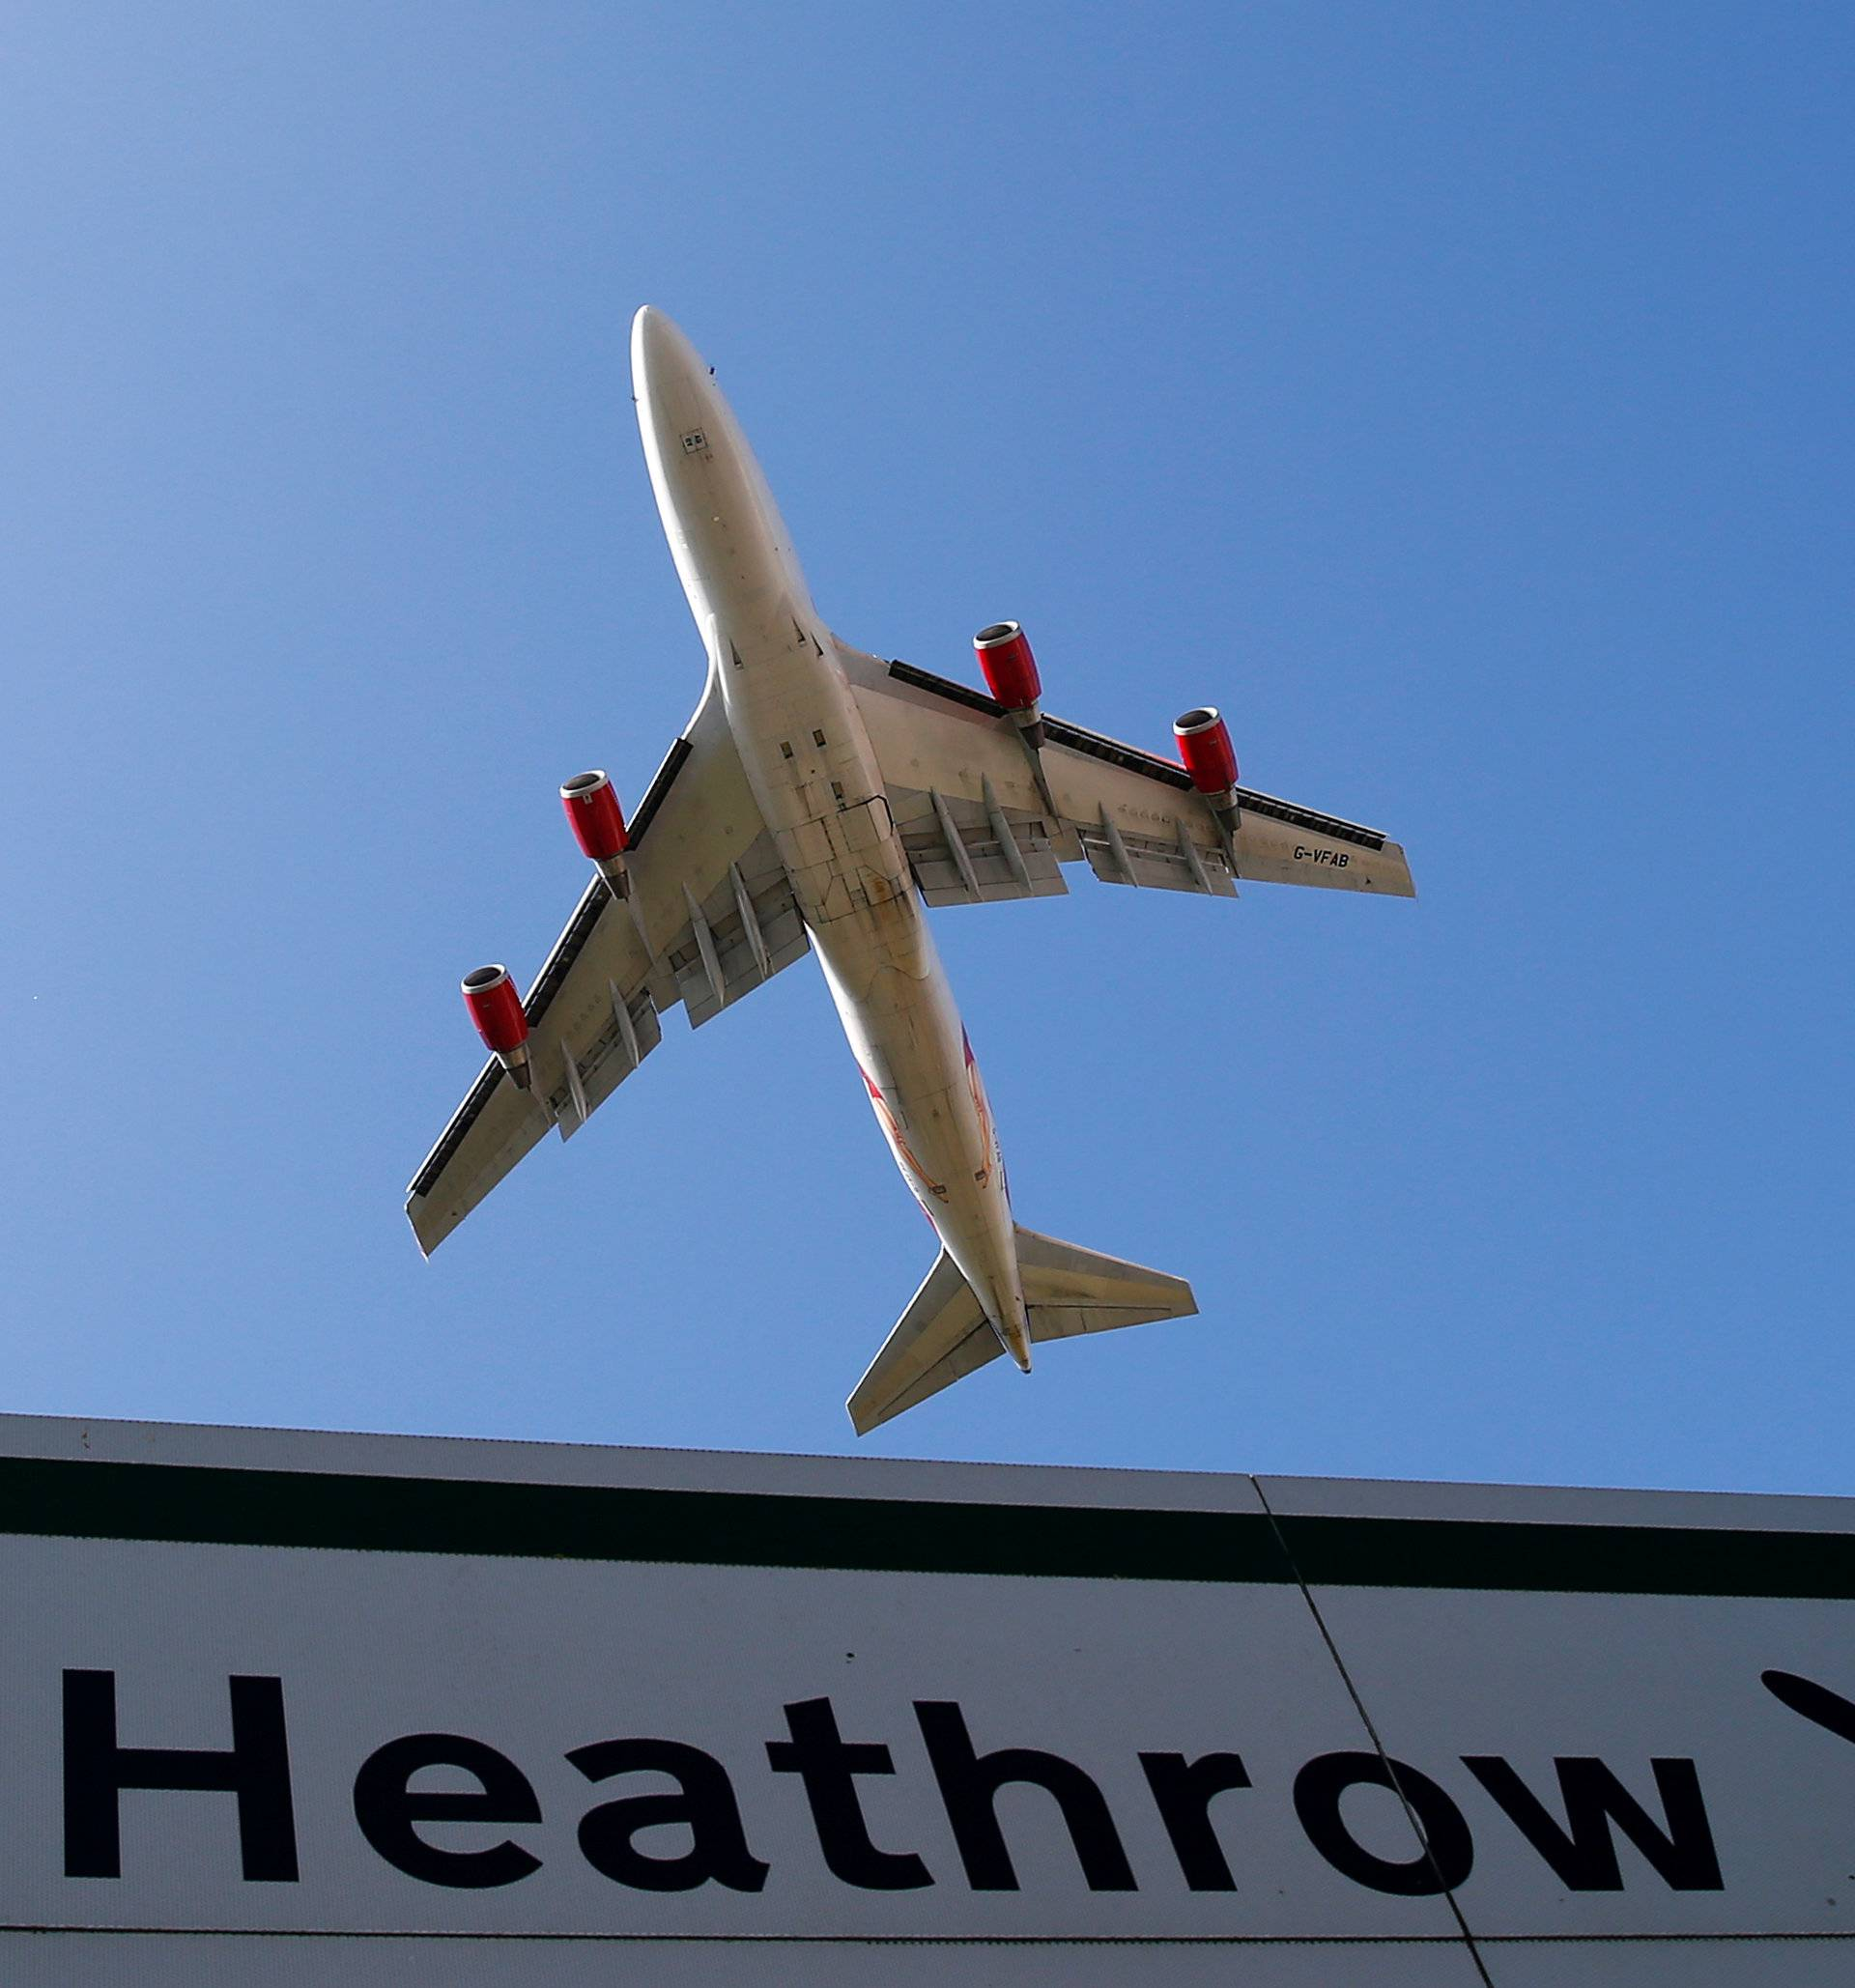 FILE PHOTO: An aircraft takes off from Heathrow airport in west London